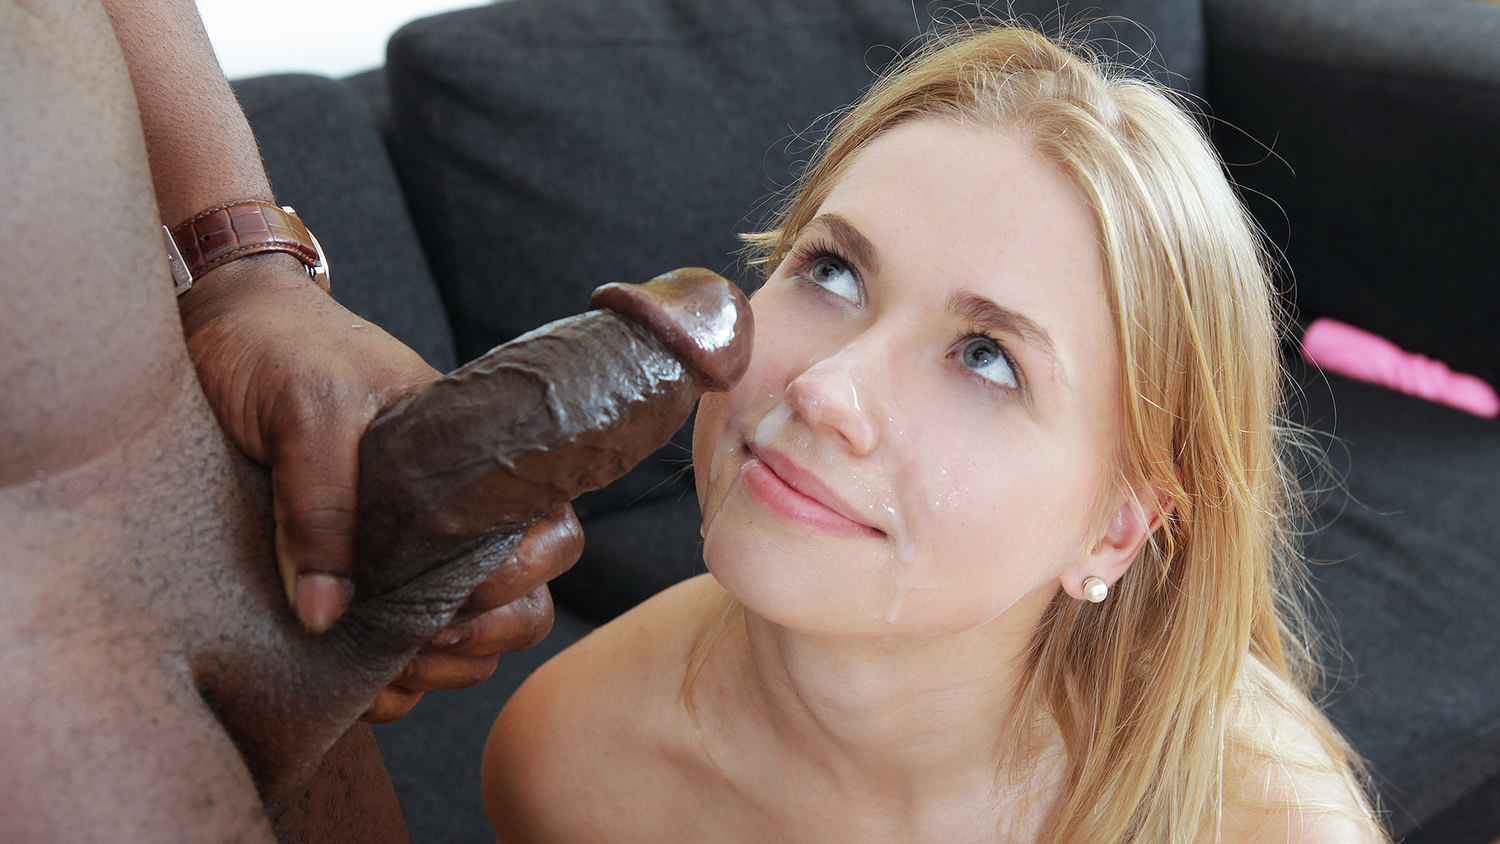 Interracial facials